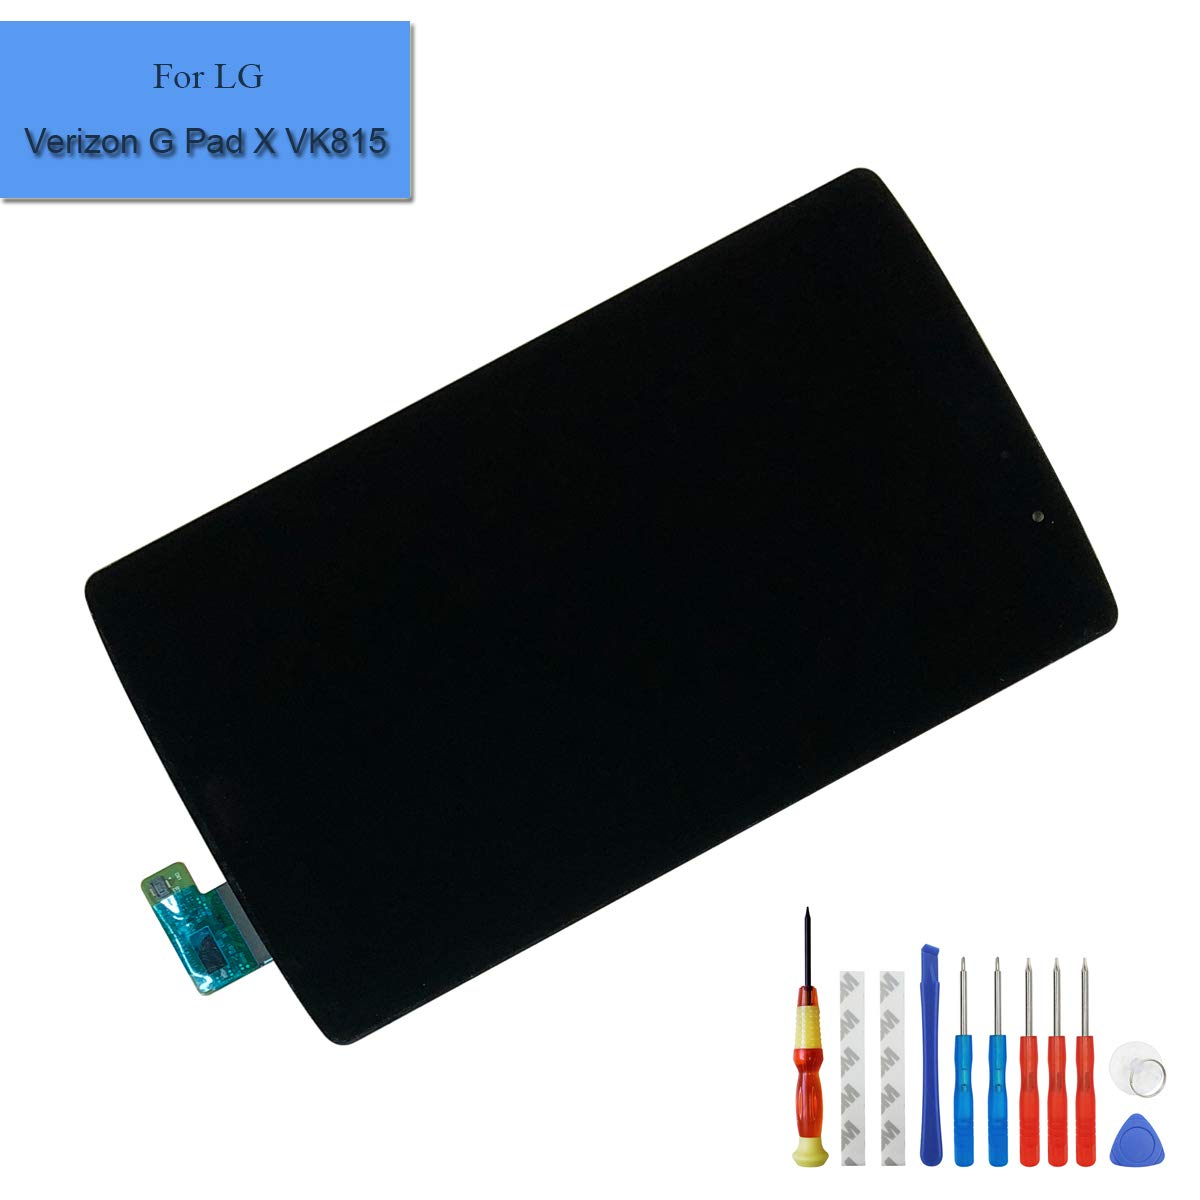 for LG Verizon G Pad X 8.3 VK815 Replacement LCD Touch Screen Display Digitizer Full Assembly Parts with Frame + Adhesive + Tools